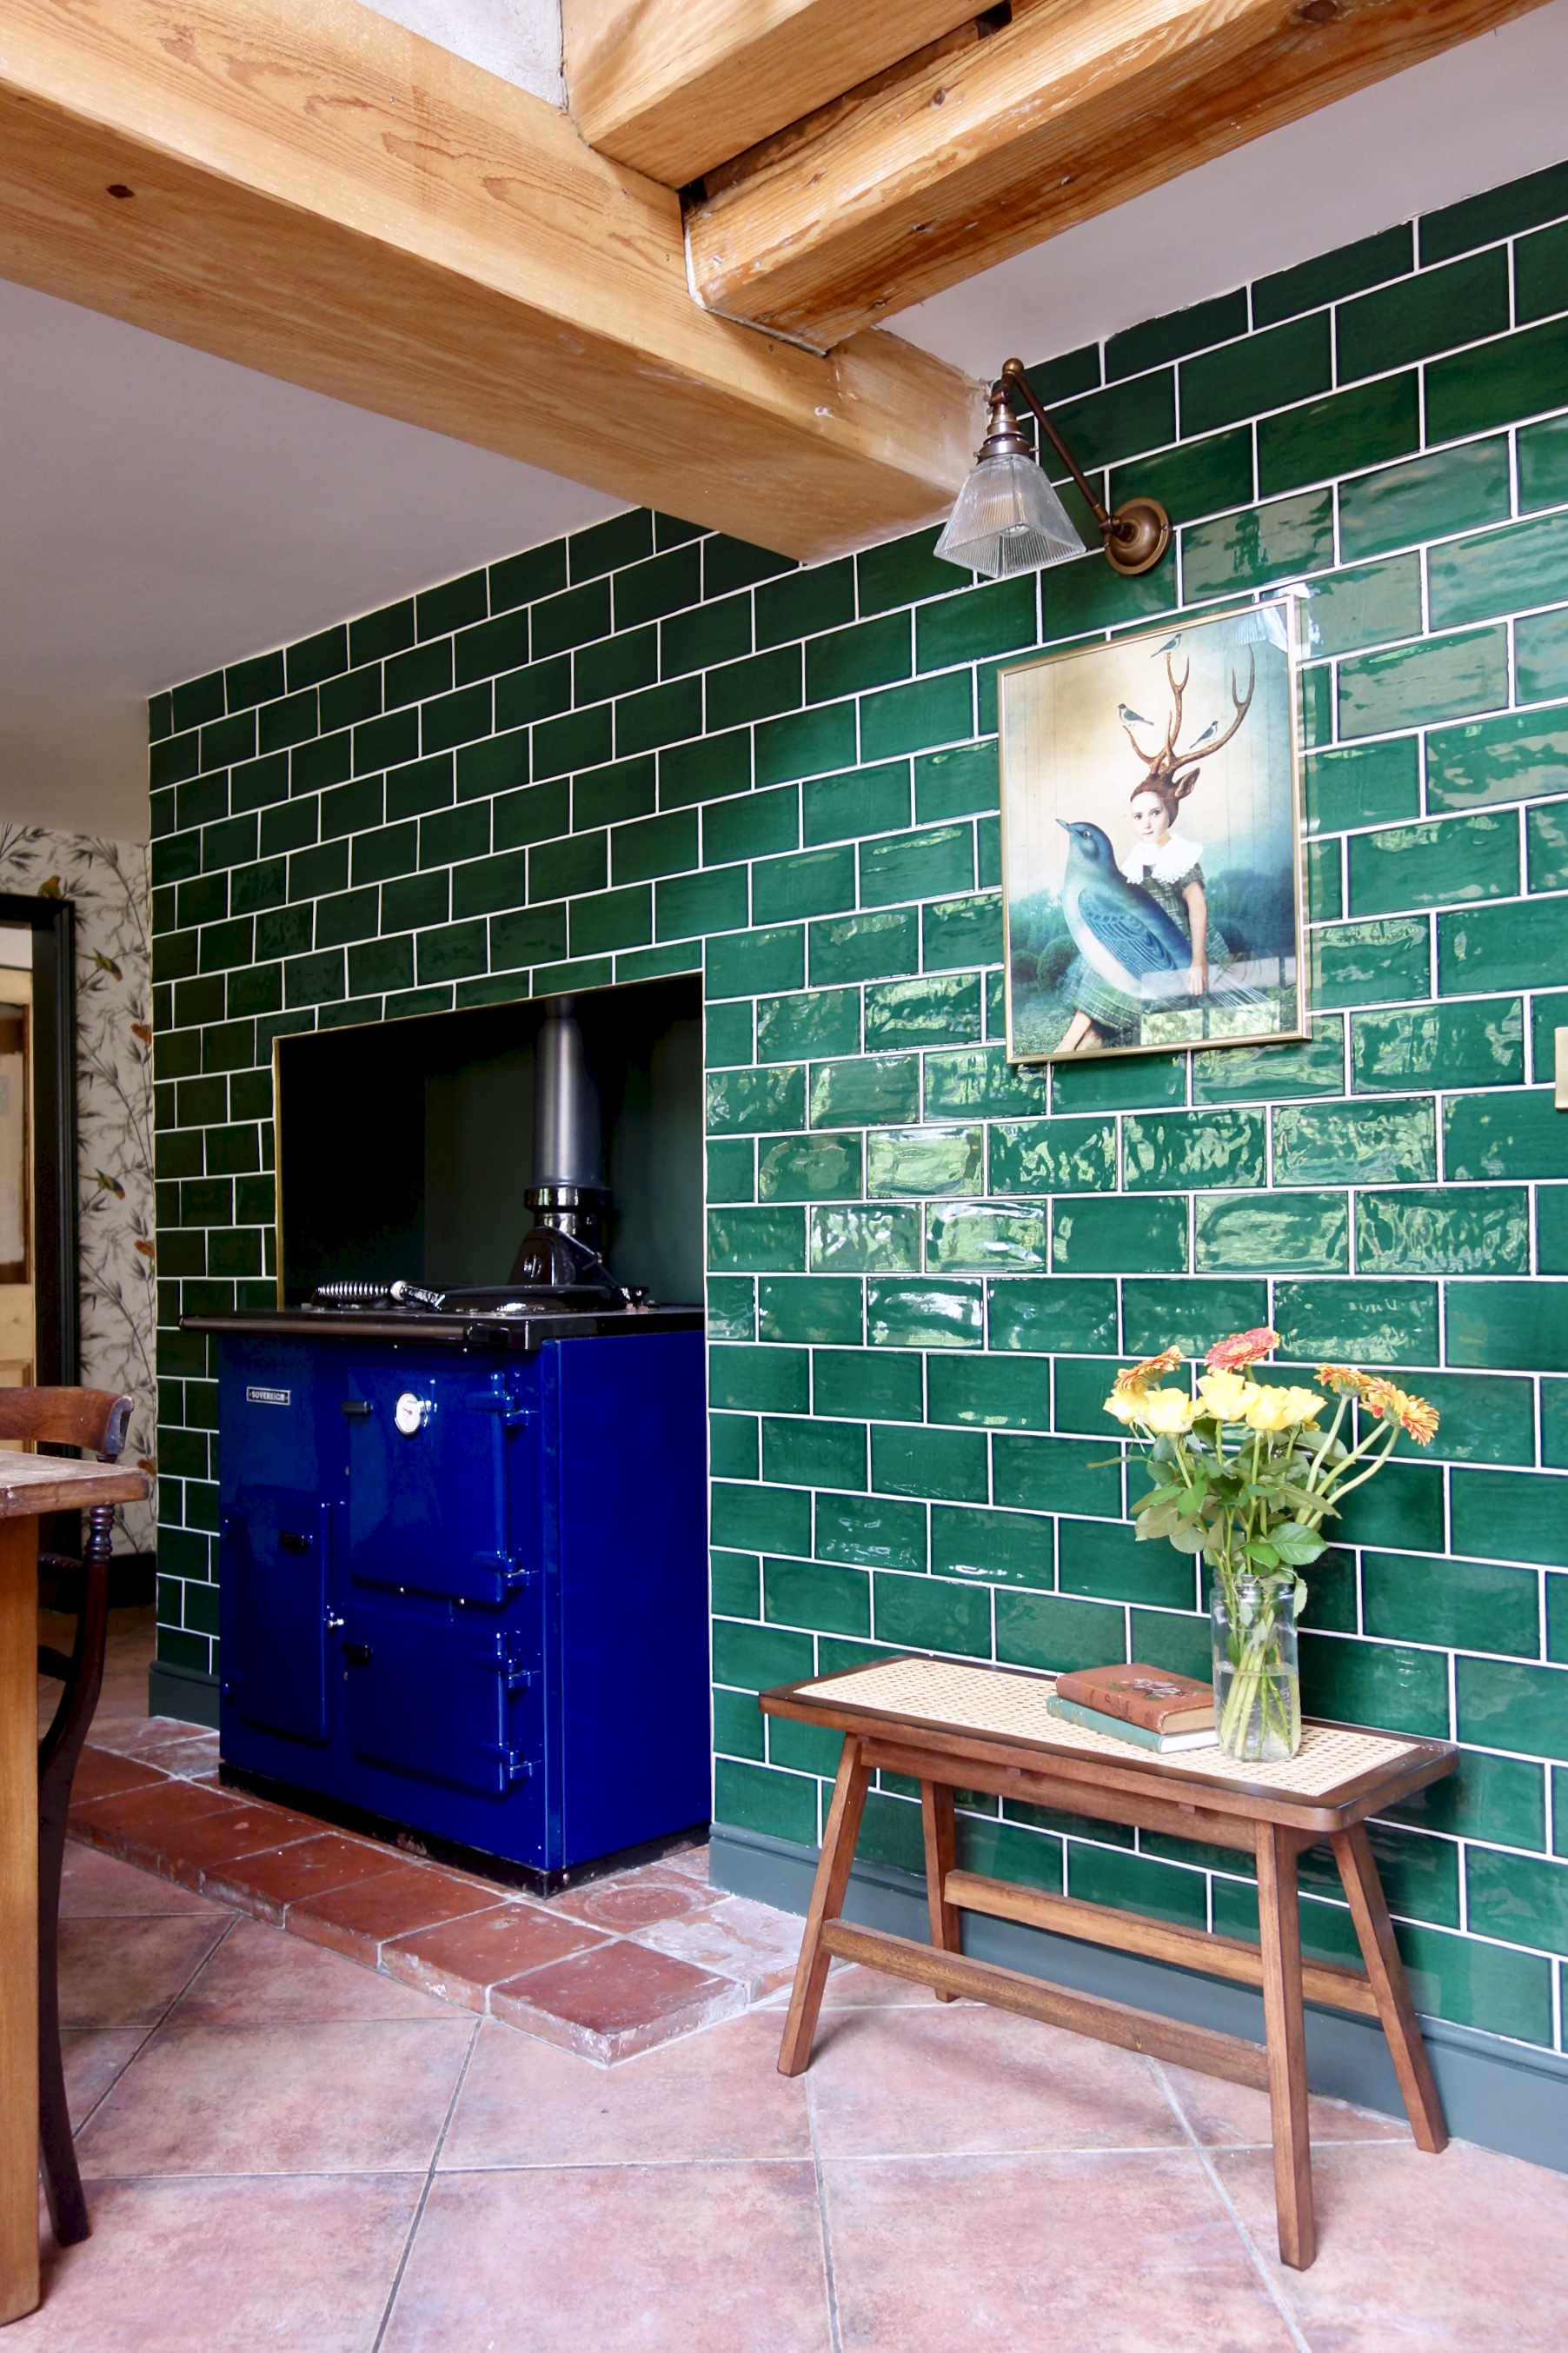 Tiled chimney breast